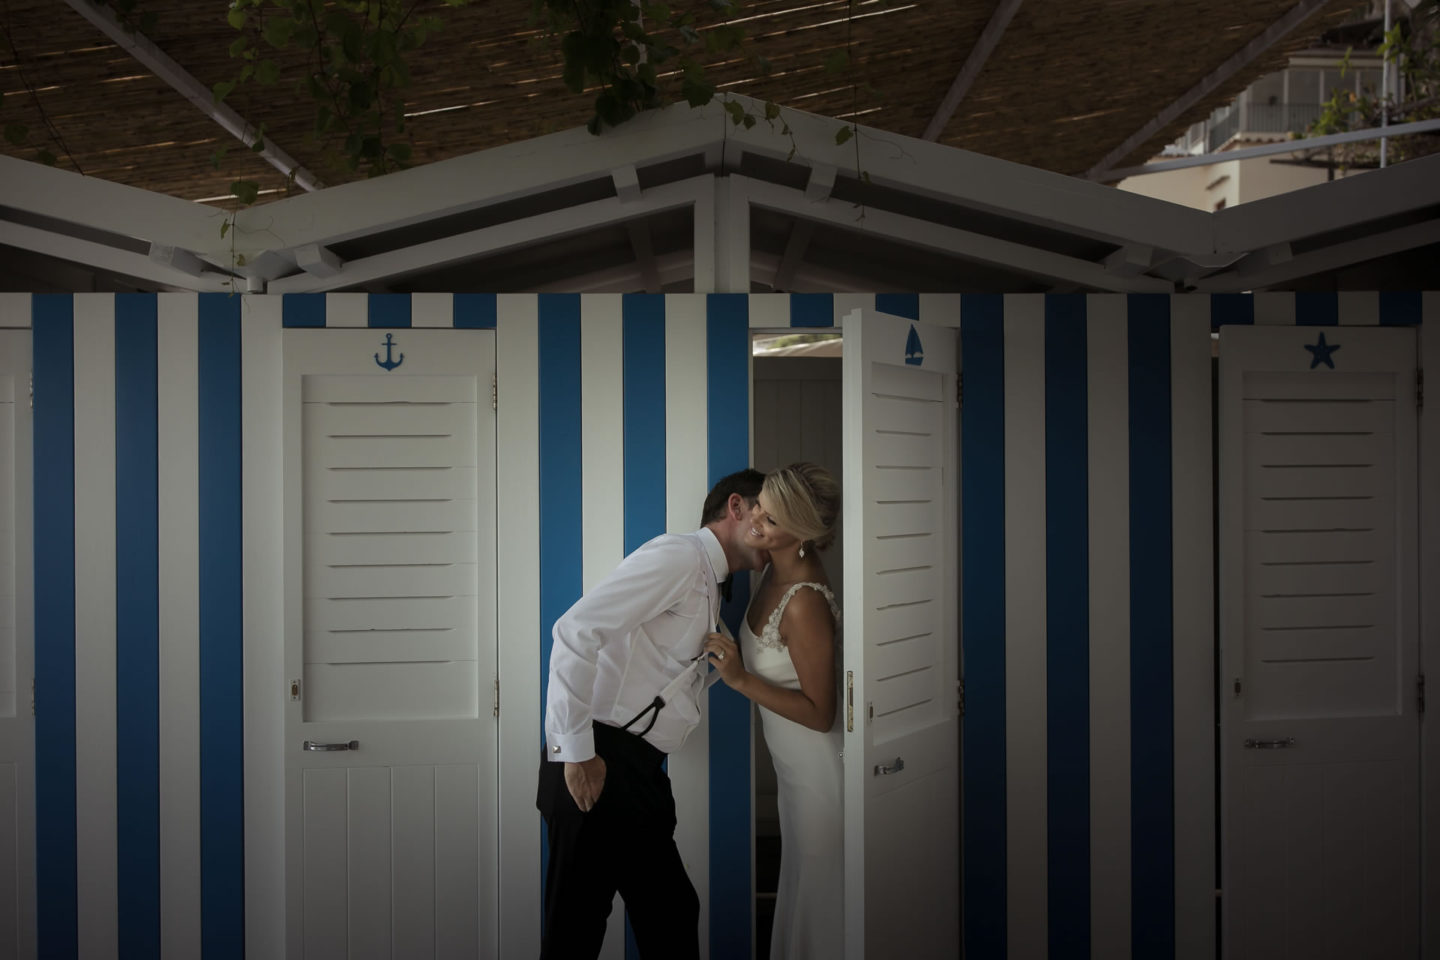 Cabins :: Wedding in Positano. Sea and love :: Wedding photographer based in Florence Tuscany Italy :: photo-50 :: Cabins